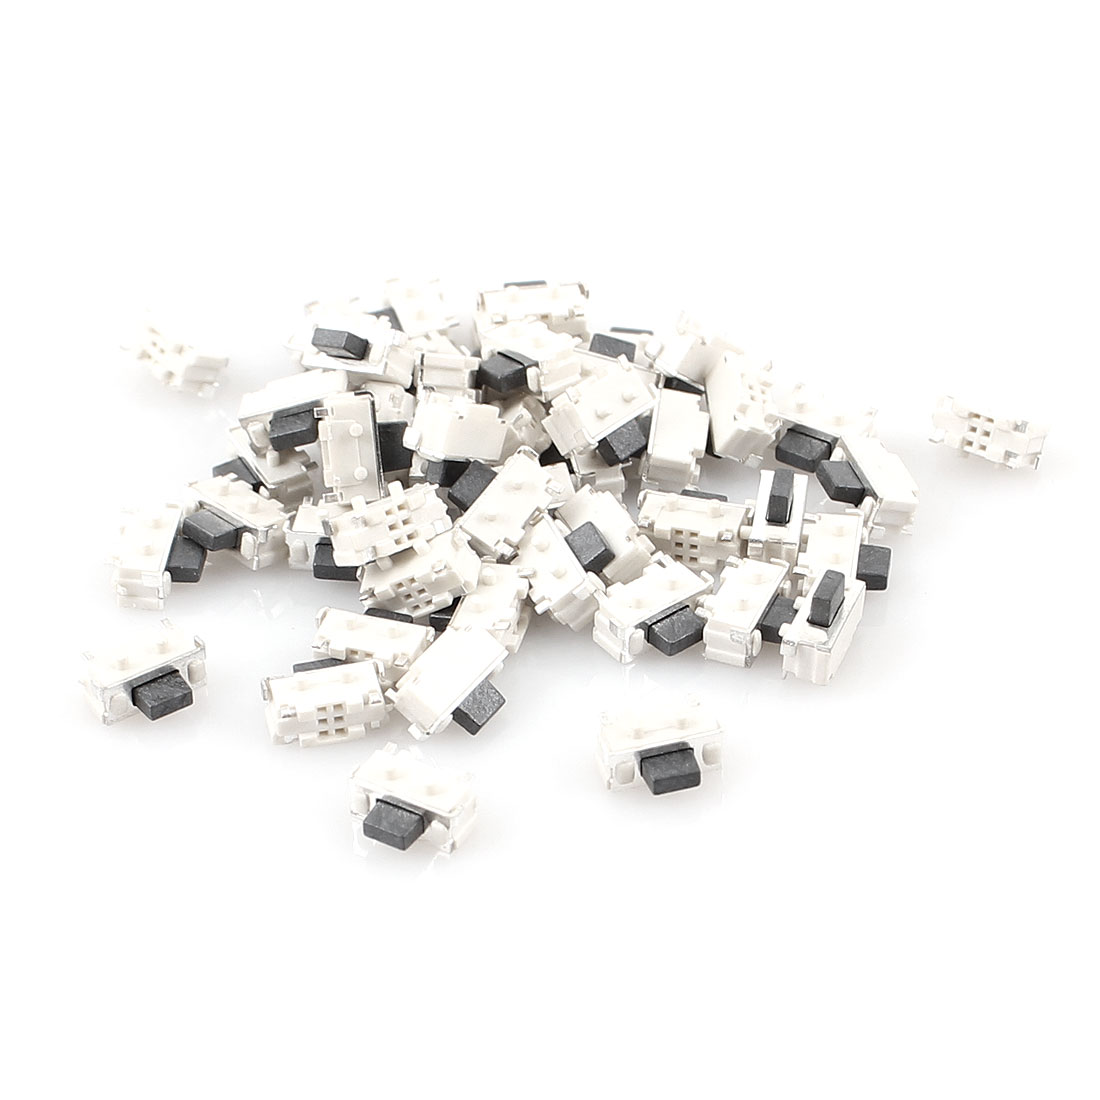 50 Pcs 4mm x 2mm SPST Momentary Push Button SMD SMT Tactile Tact Switch